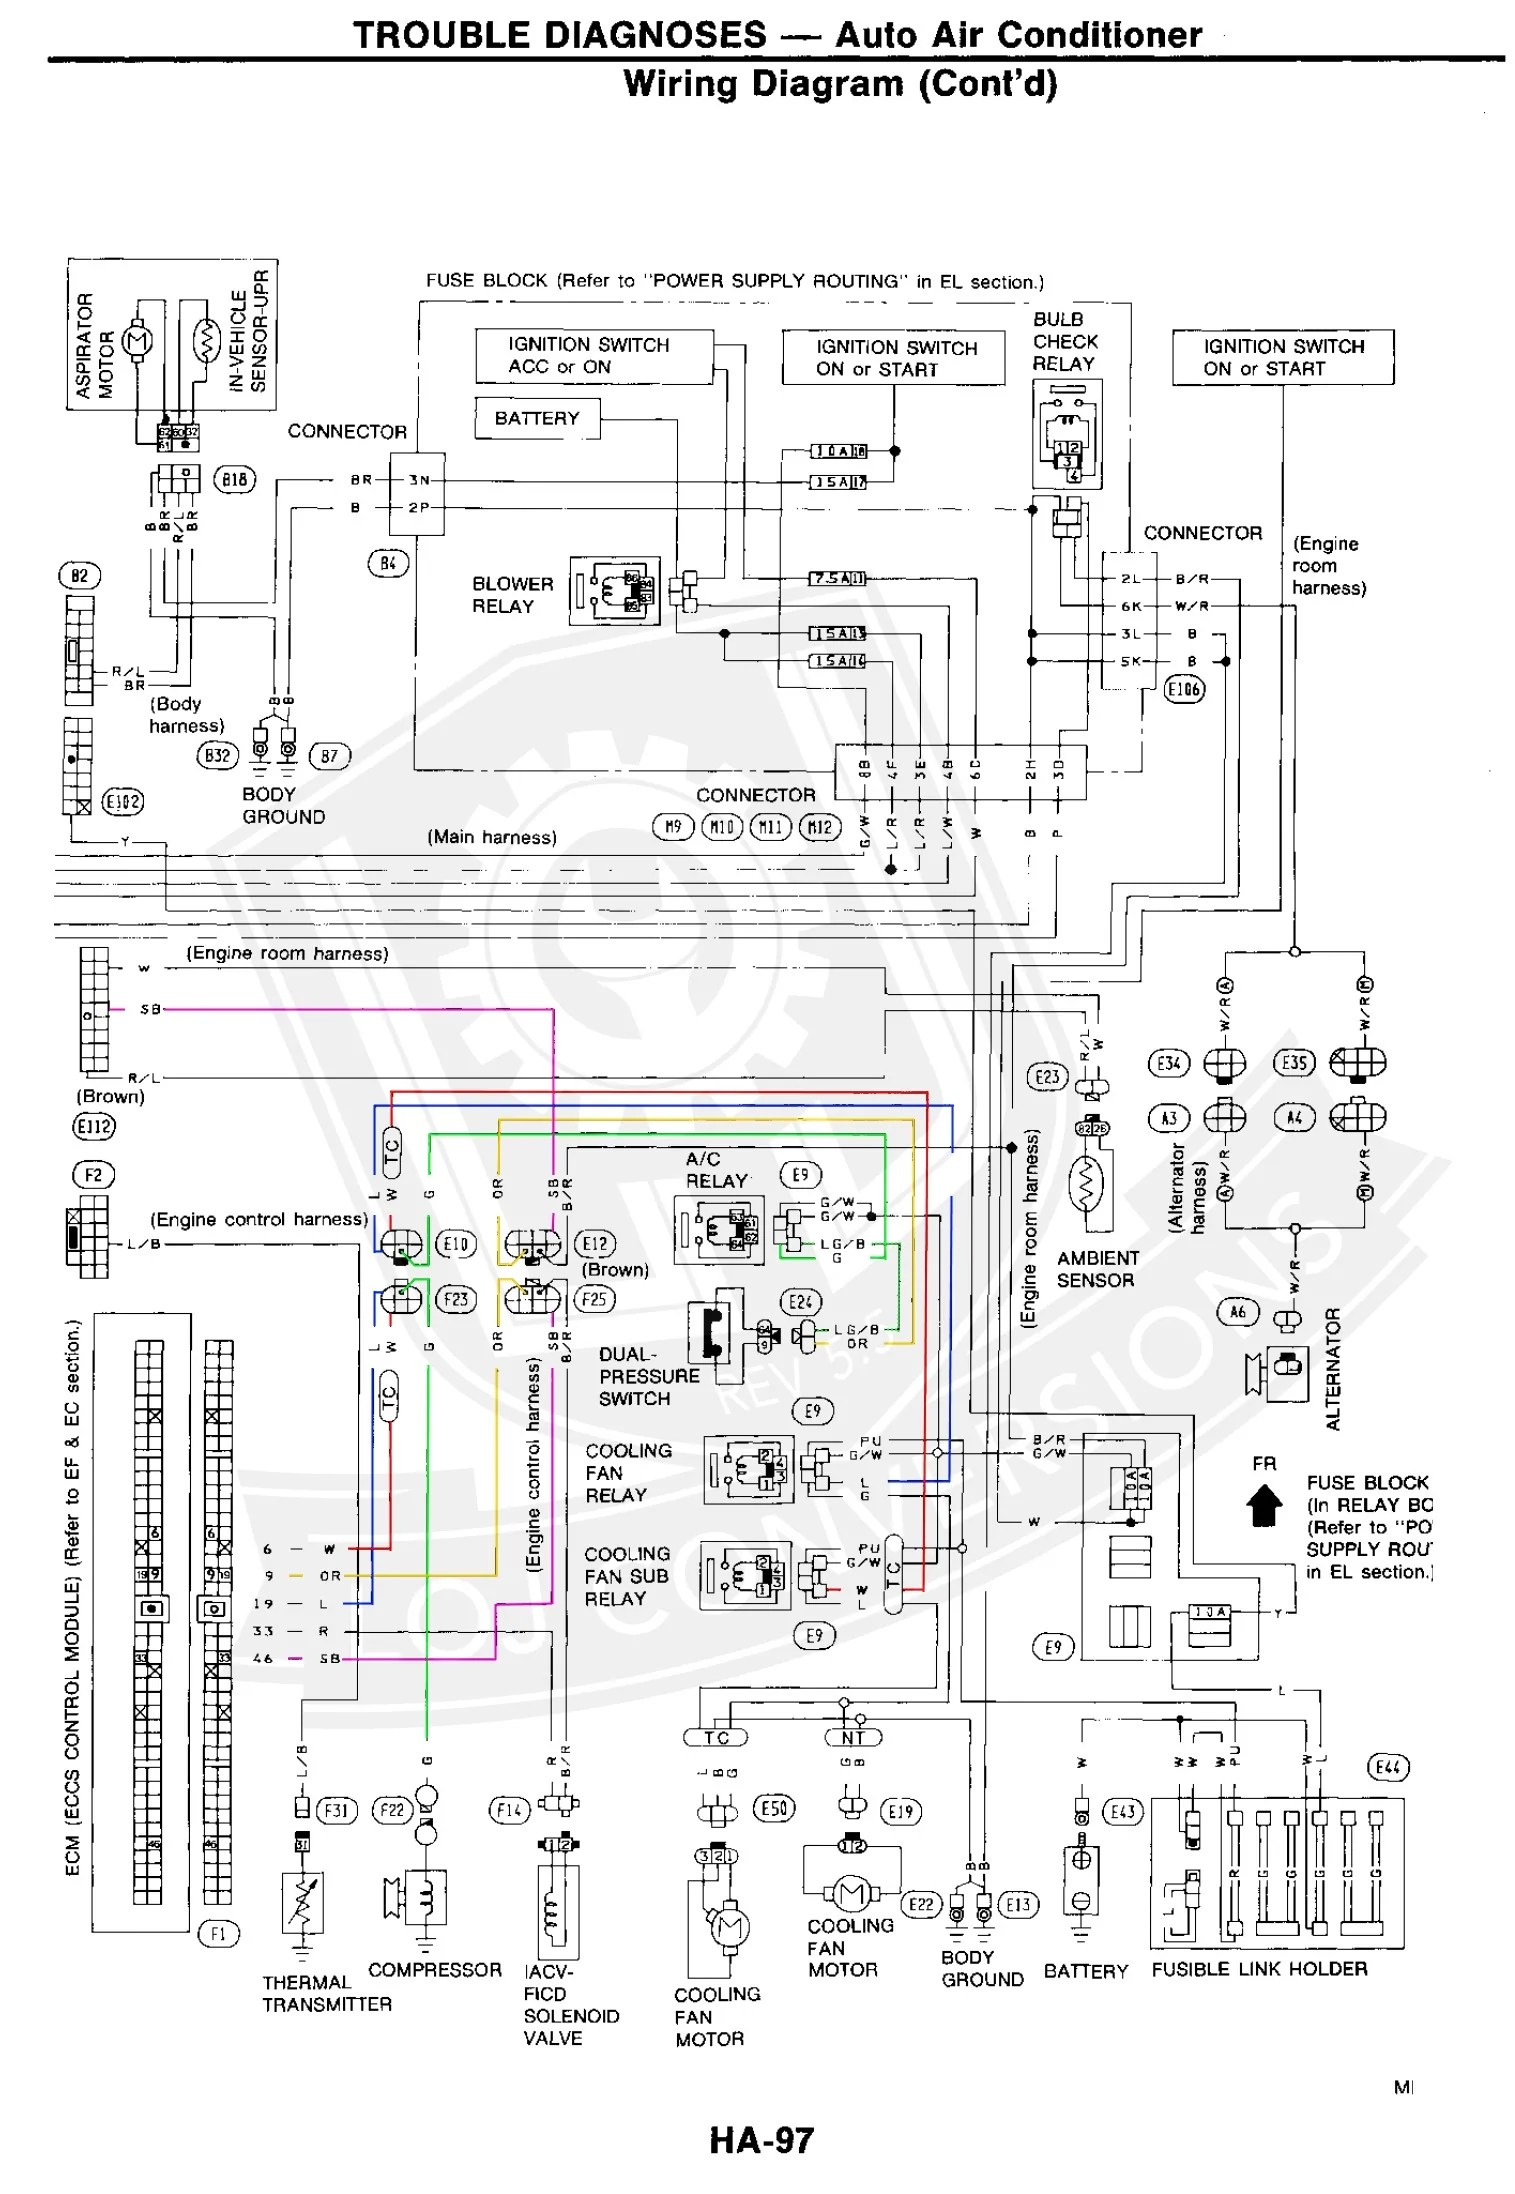 hight resolution of wiring diagram besides nissan 300zx engine bay also 300zx engine 300zx twin turbo engine diagram twinturbonet nissan 300zx